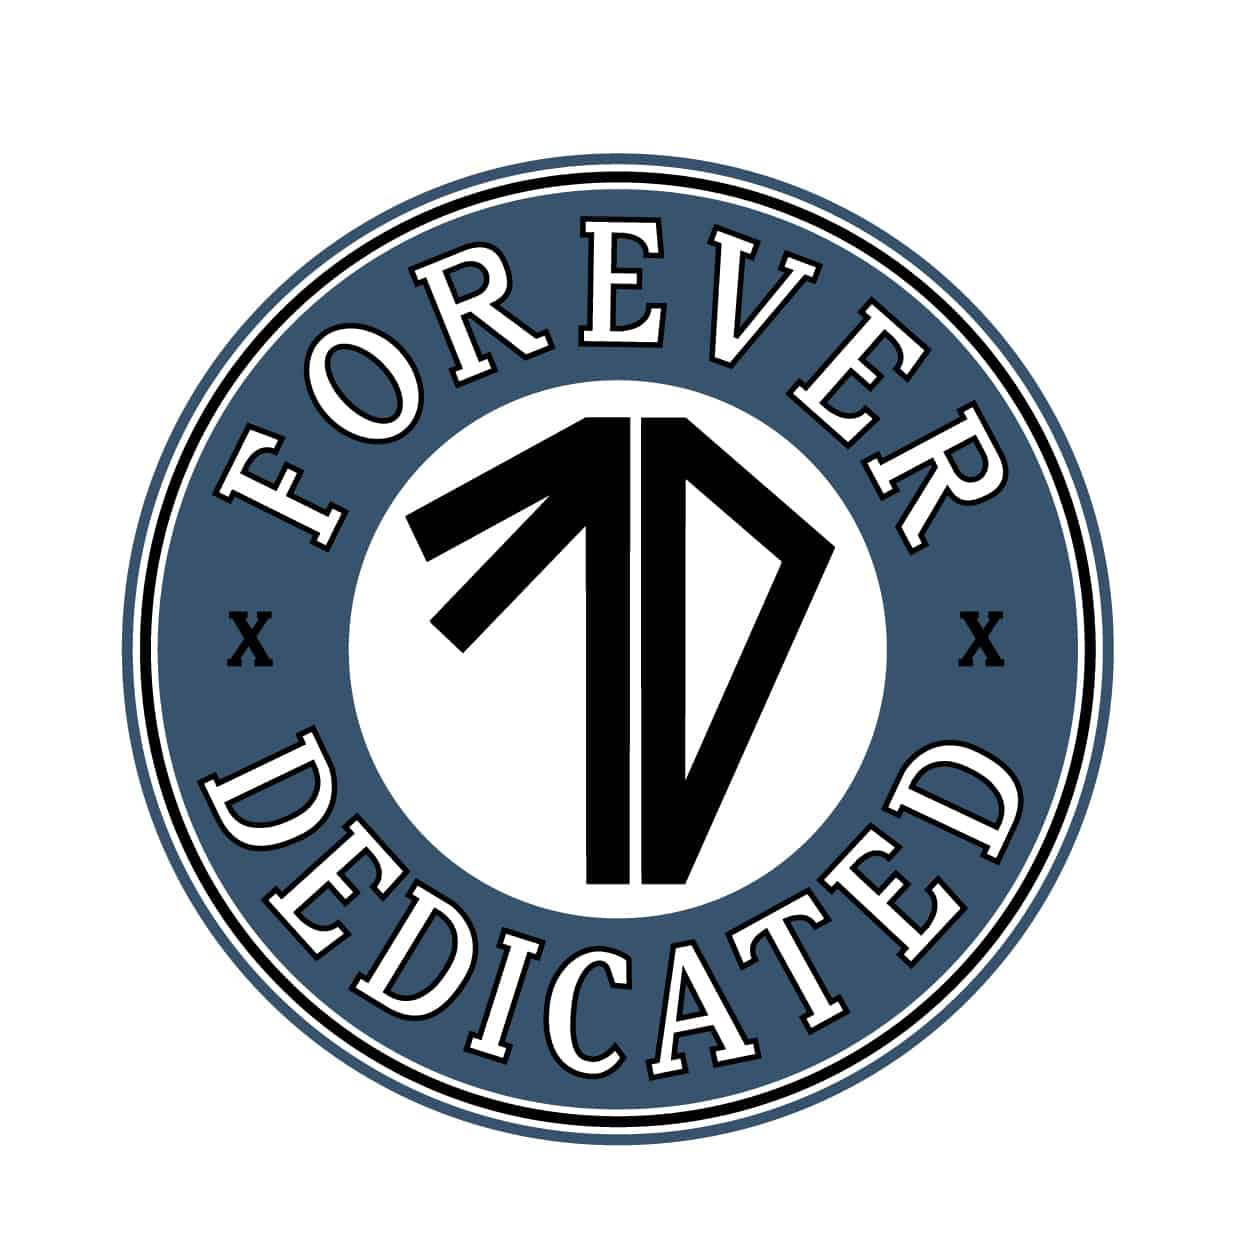 forever dedicated - classic - skateboard design